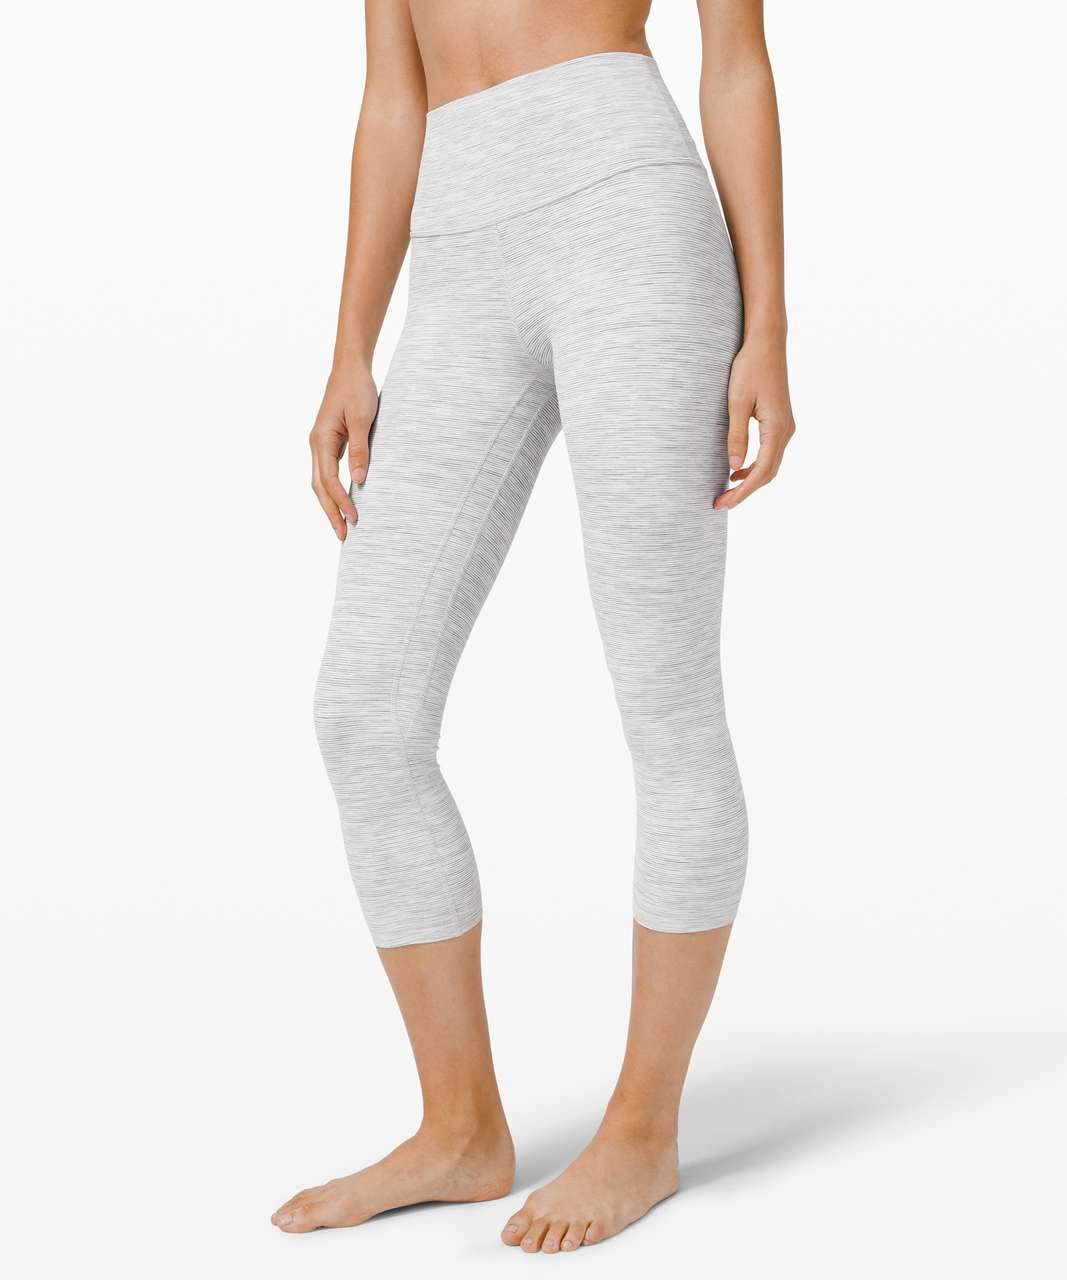 "Lululemon Align Crop *21"" - Wee Are From Space Nimbus Battleship"